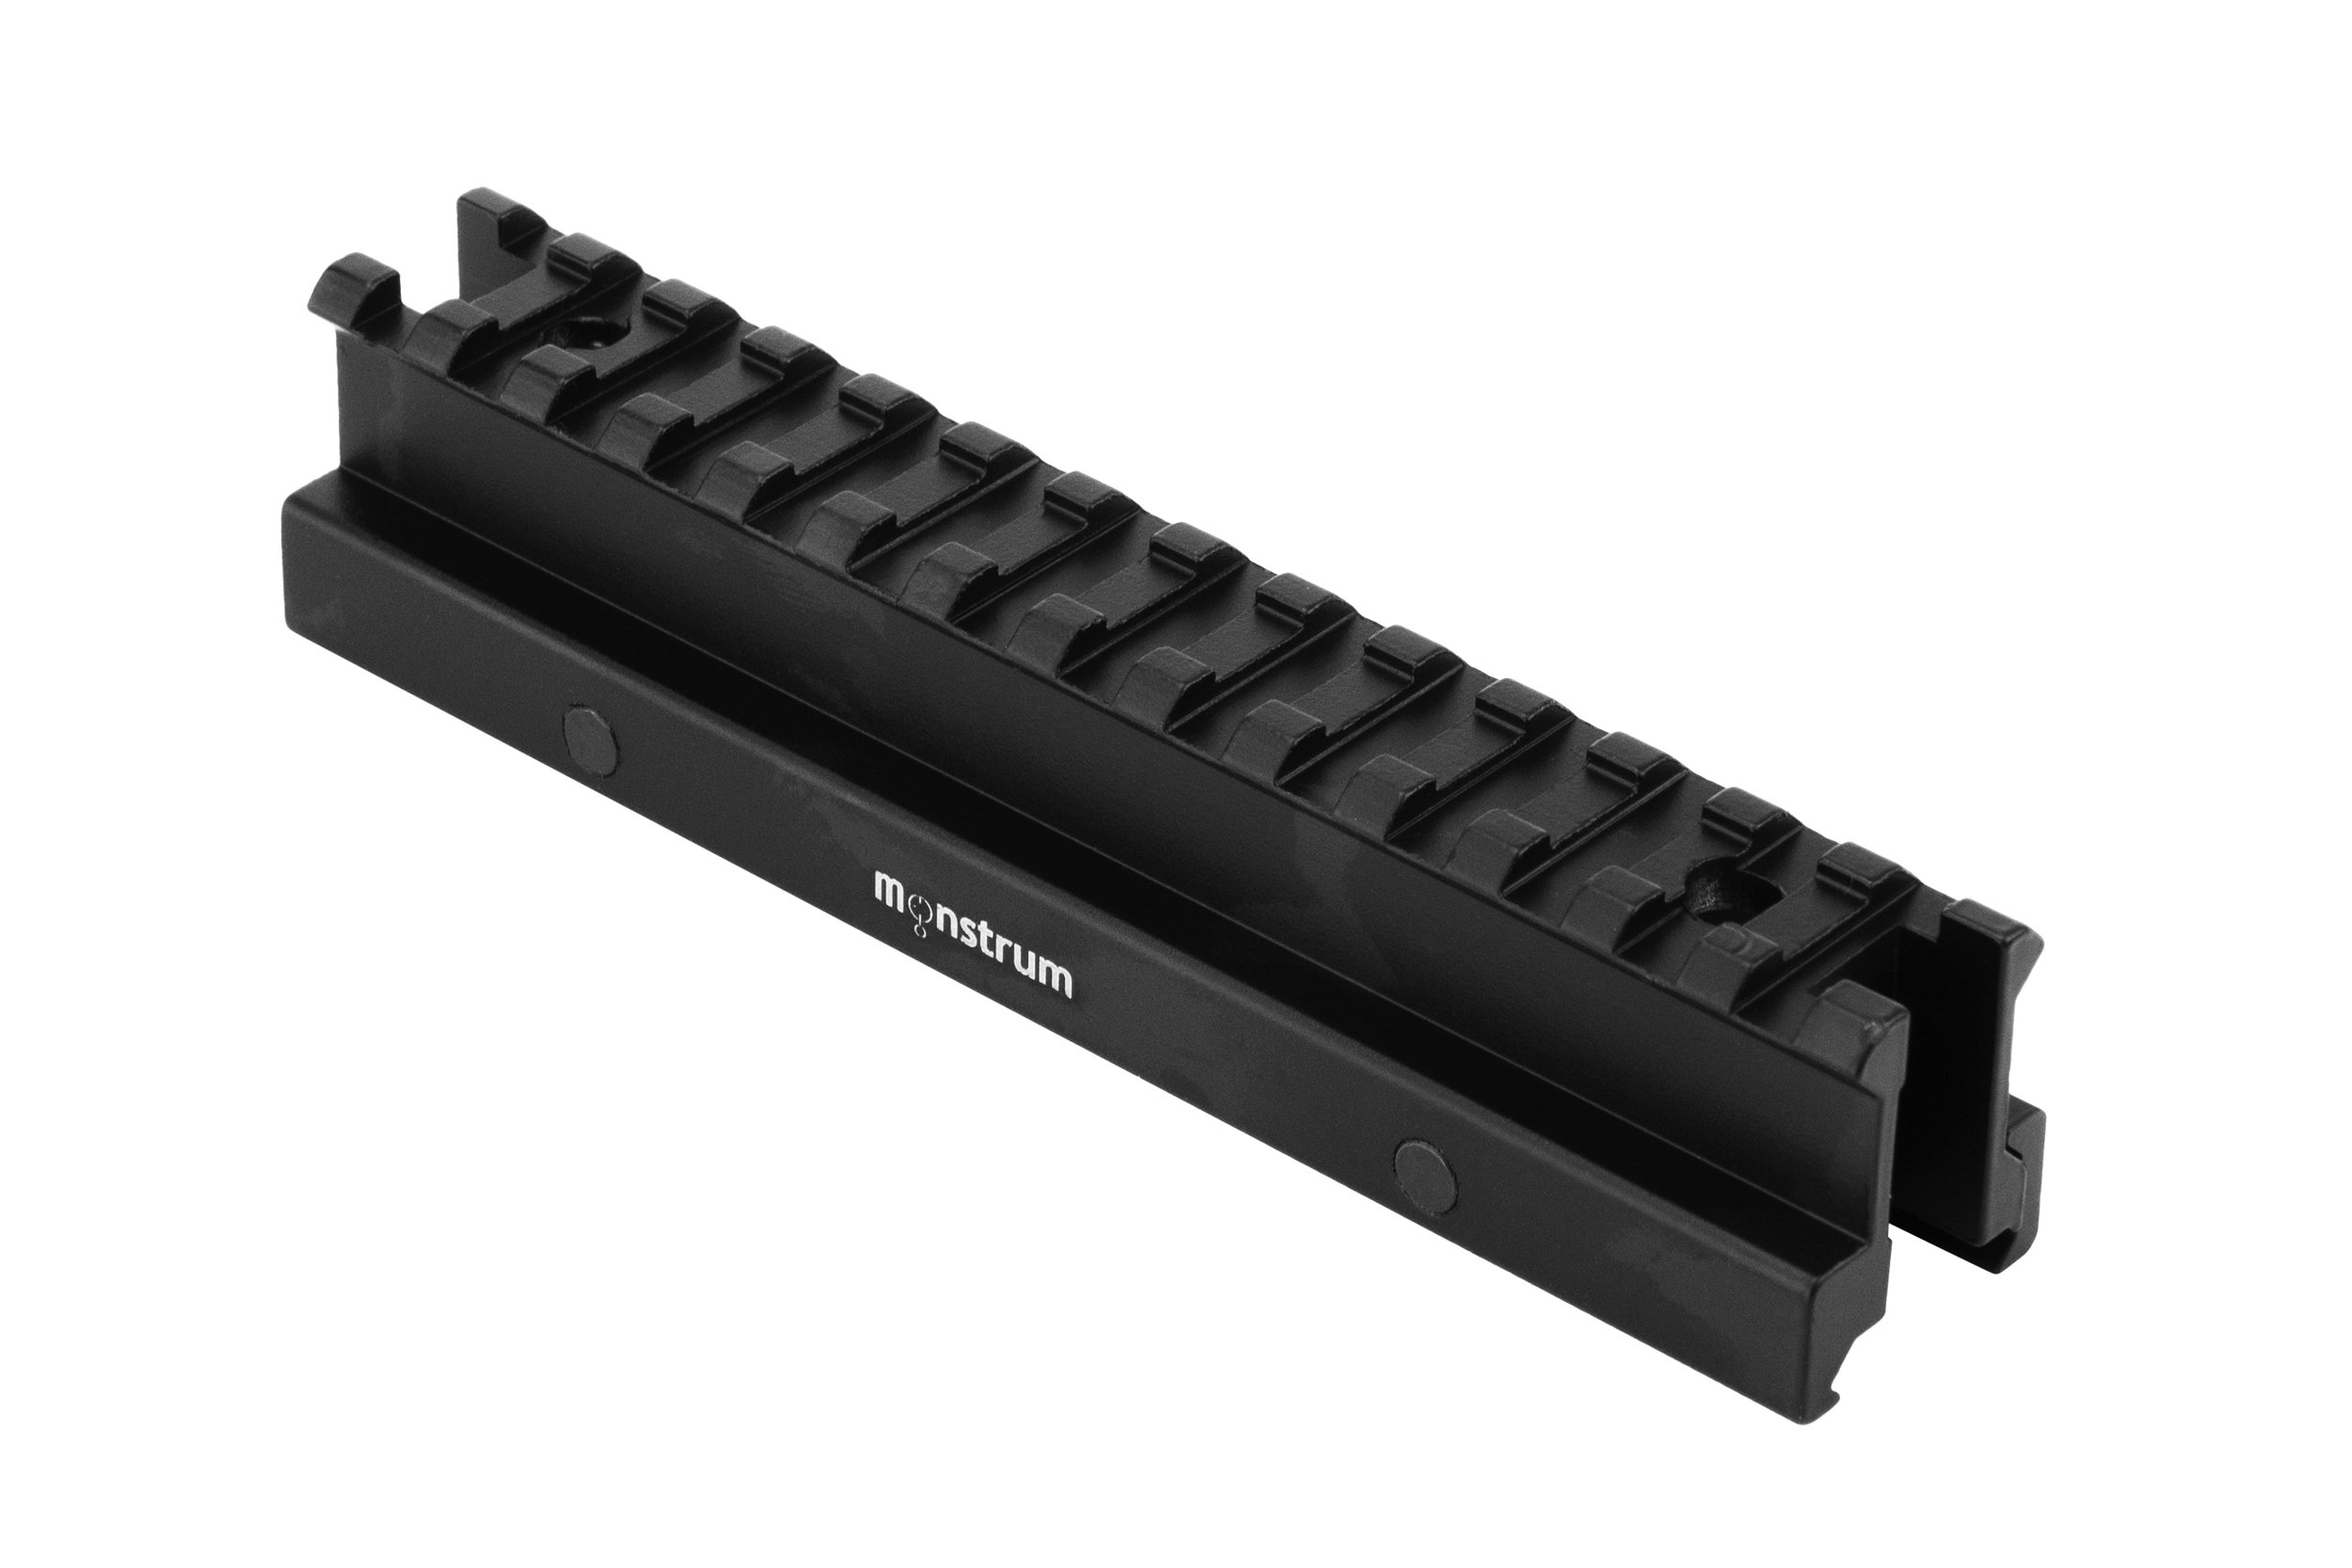 Monstrum Tactical High Profile Picatinny Riser Mount (1'' H x 5.7'' L), for Scopes and Optics